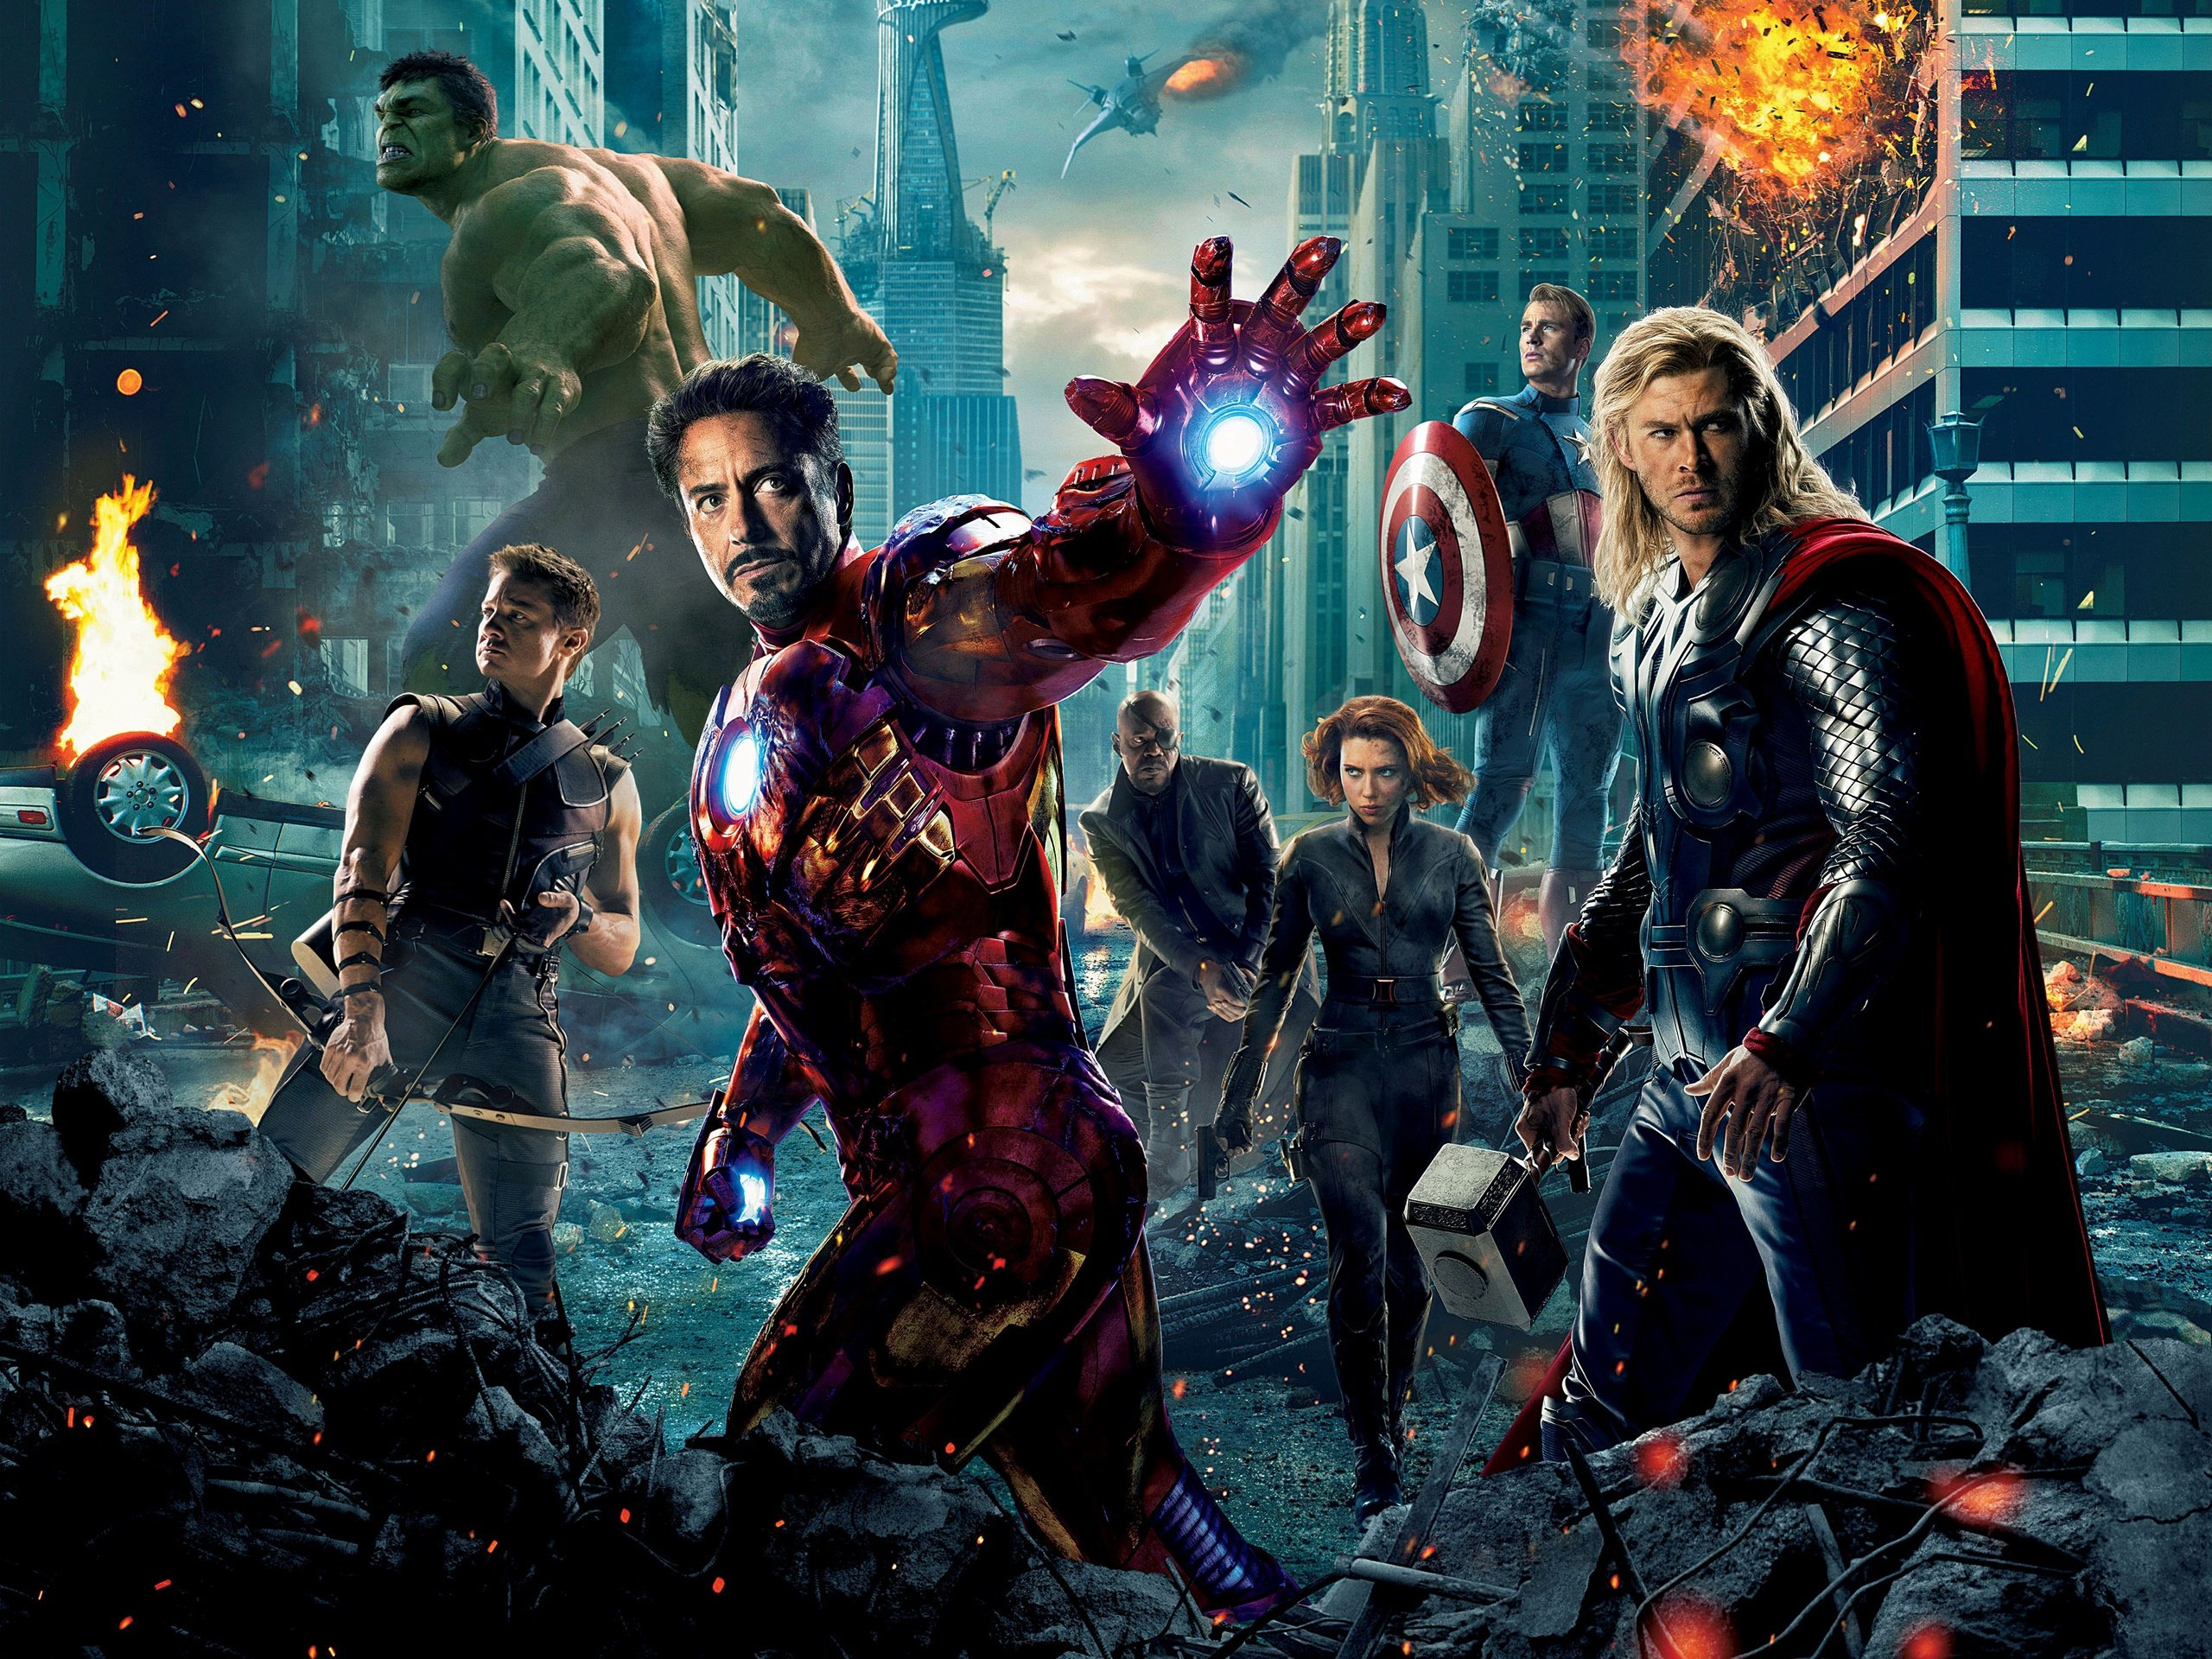 2012-The-Avengers-movie-HD-wide-wallpaper-screensaver-hd-desktop-background-film-poster.jpg